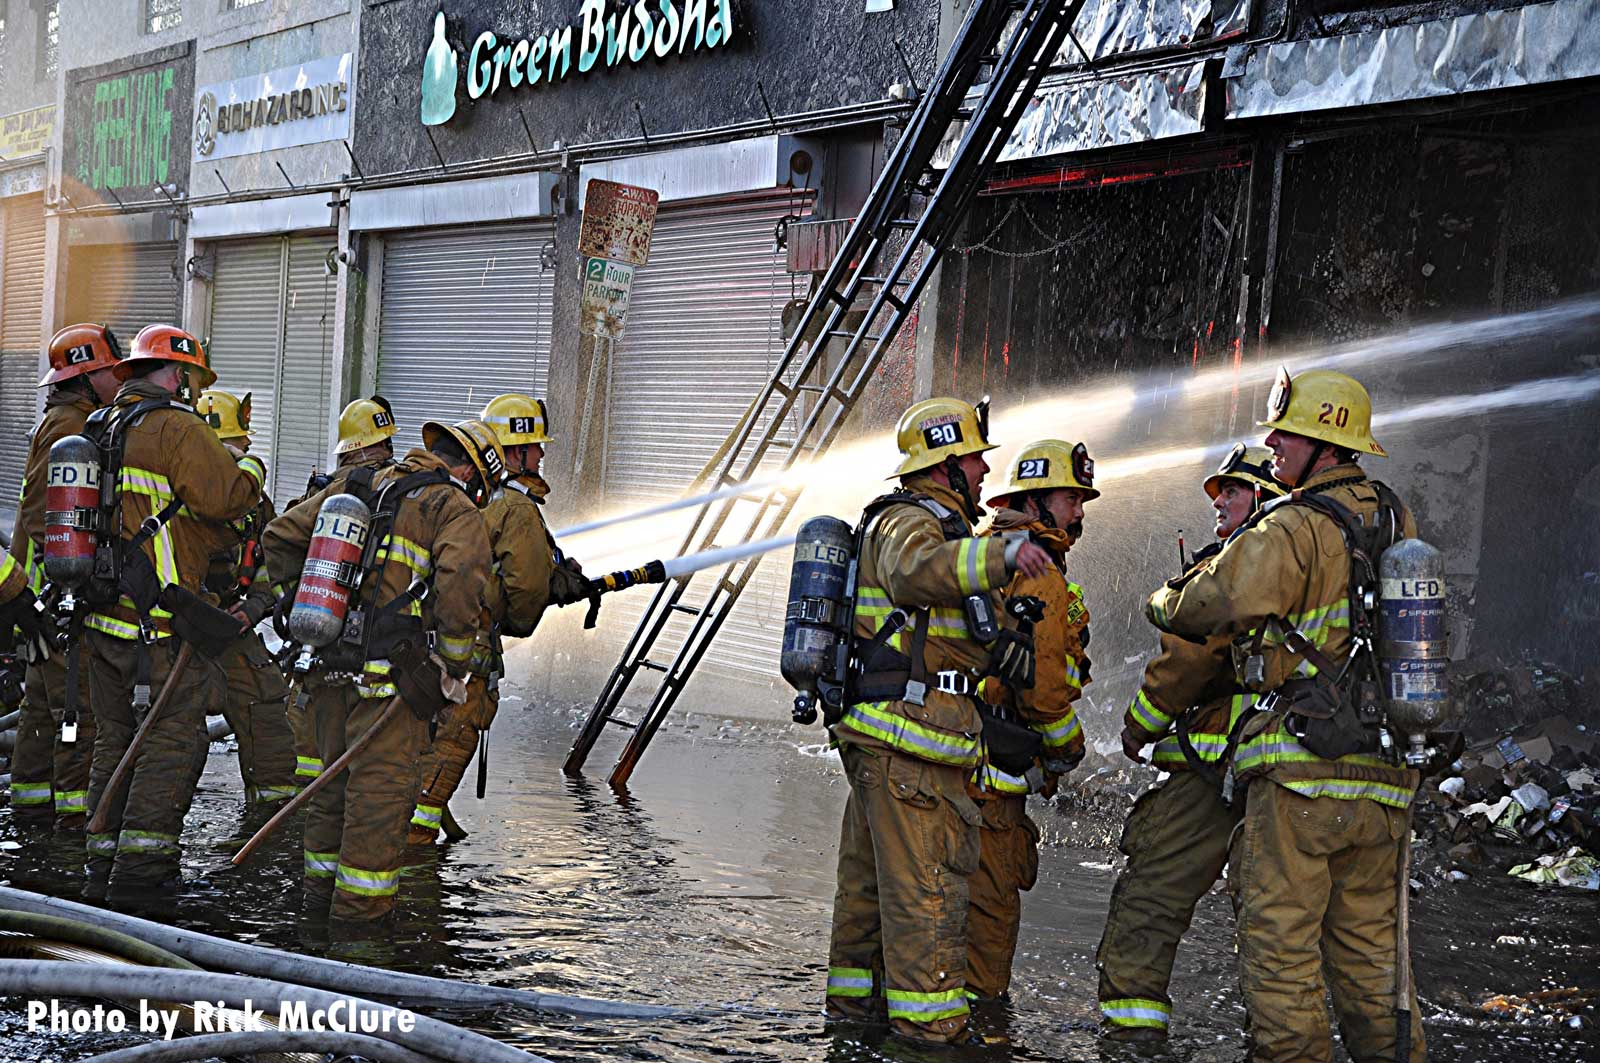 Firefighters put water on the fire in Los Angeles